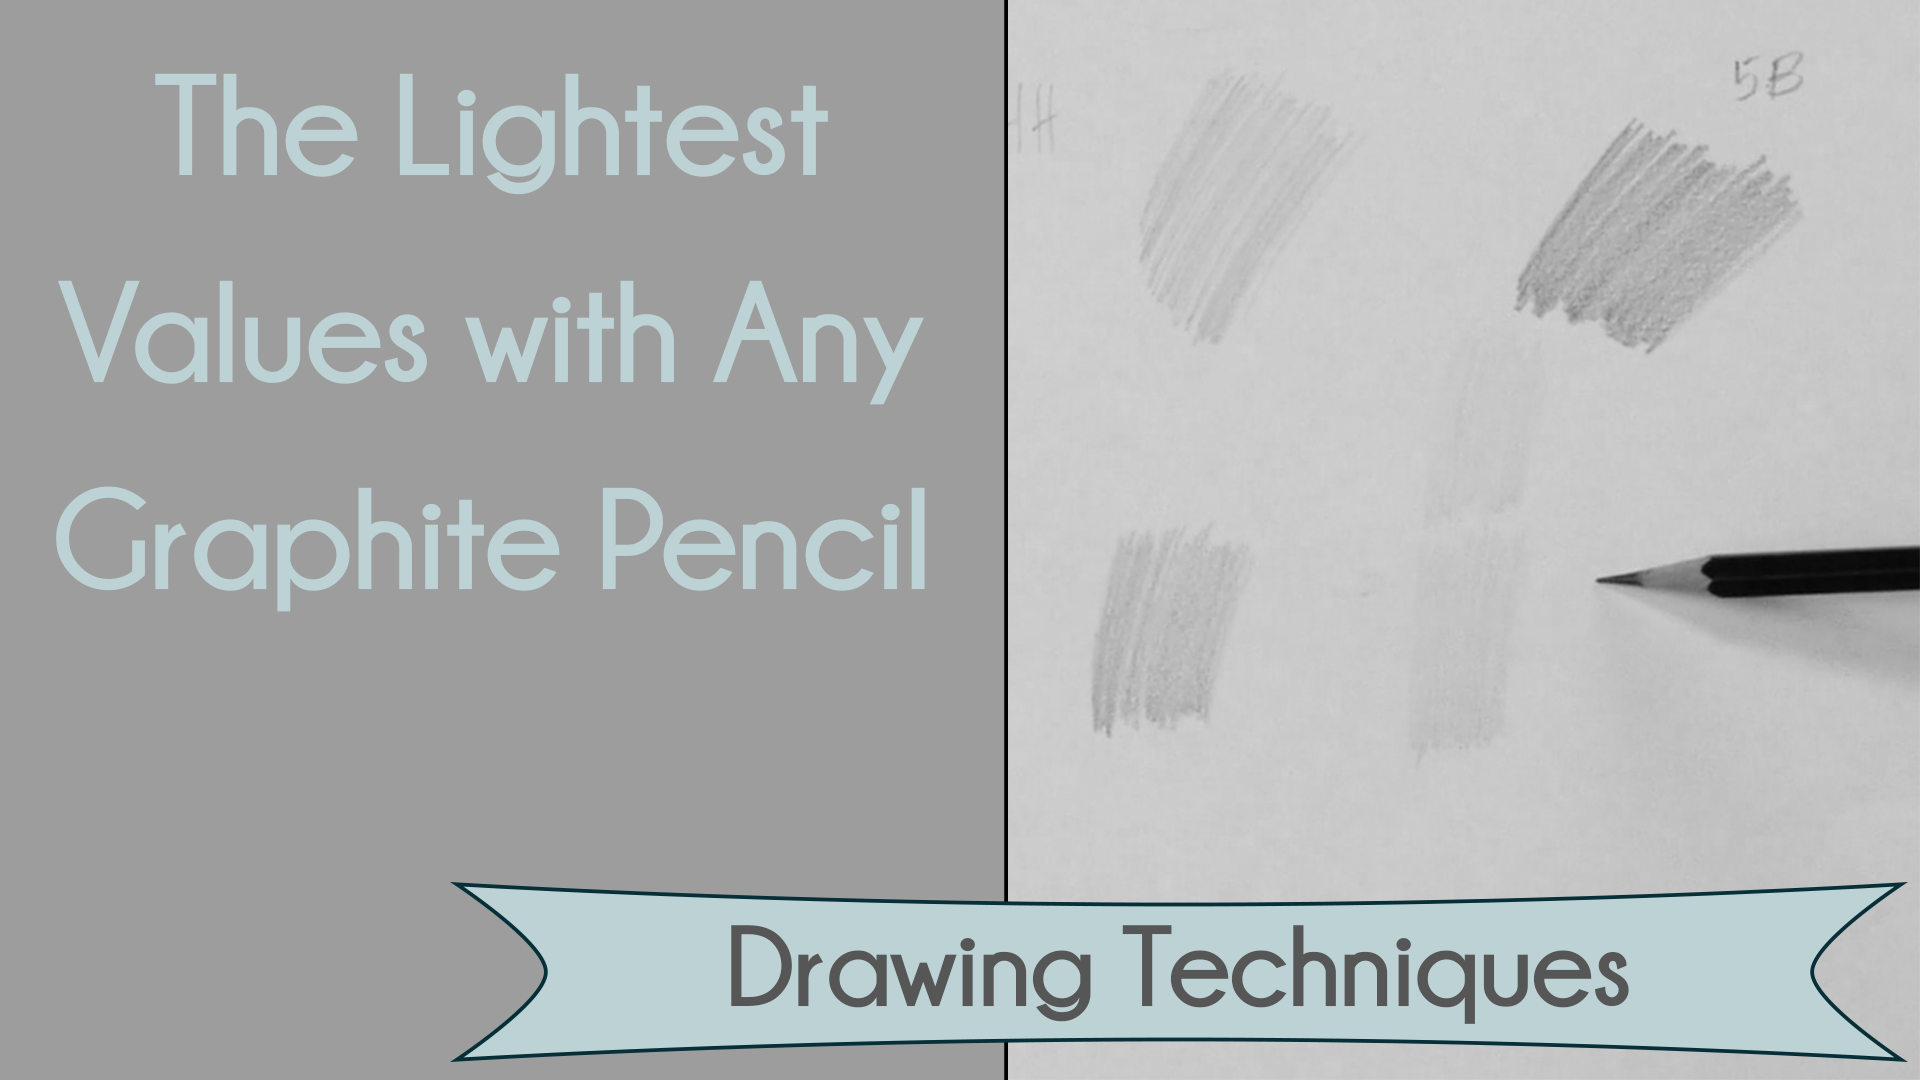 How to draw the lightest values with any graphite pencil png lzm